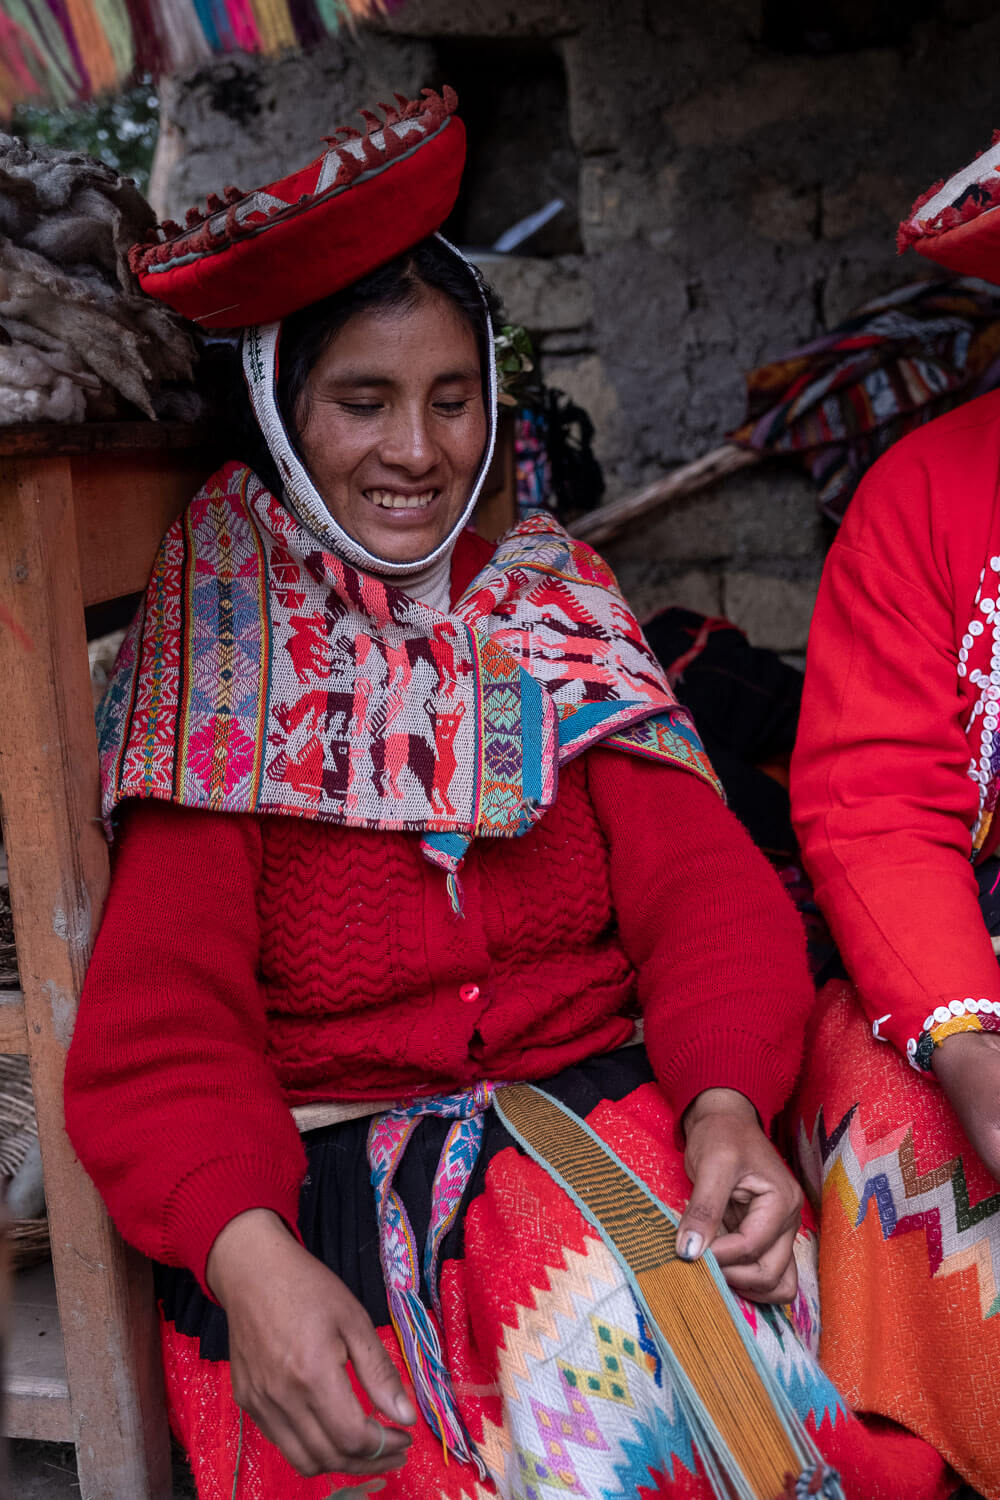 """A weaving demonstration in the village of Patacancha, The Sacred Valley, Peru. Travel photography and guide by © Natasha Lequepeys for """"And Then I Met Yoko"""". #peru #sacredvalley #patacancha #photoblog #travelblog #travelphotography #portraitphotography #travelitinerary #fujifilm #weaving #tradition #culture #people #andes #village #weavingdemonstration #cusco #ollantaytambo #travel #travelperu"""